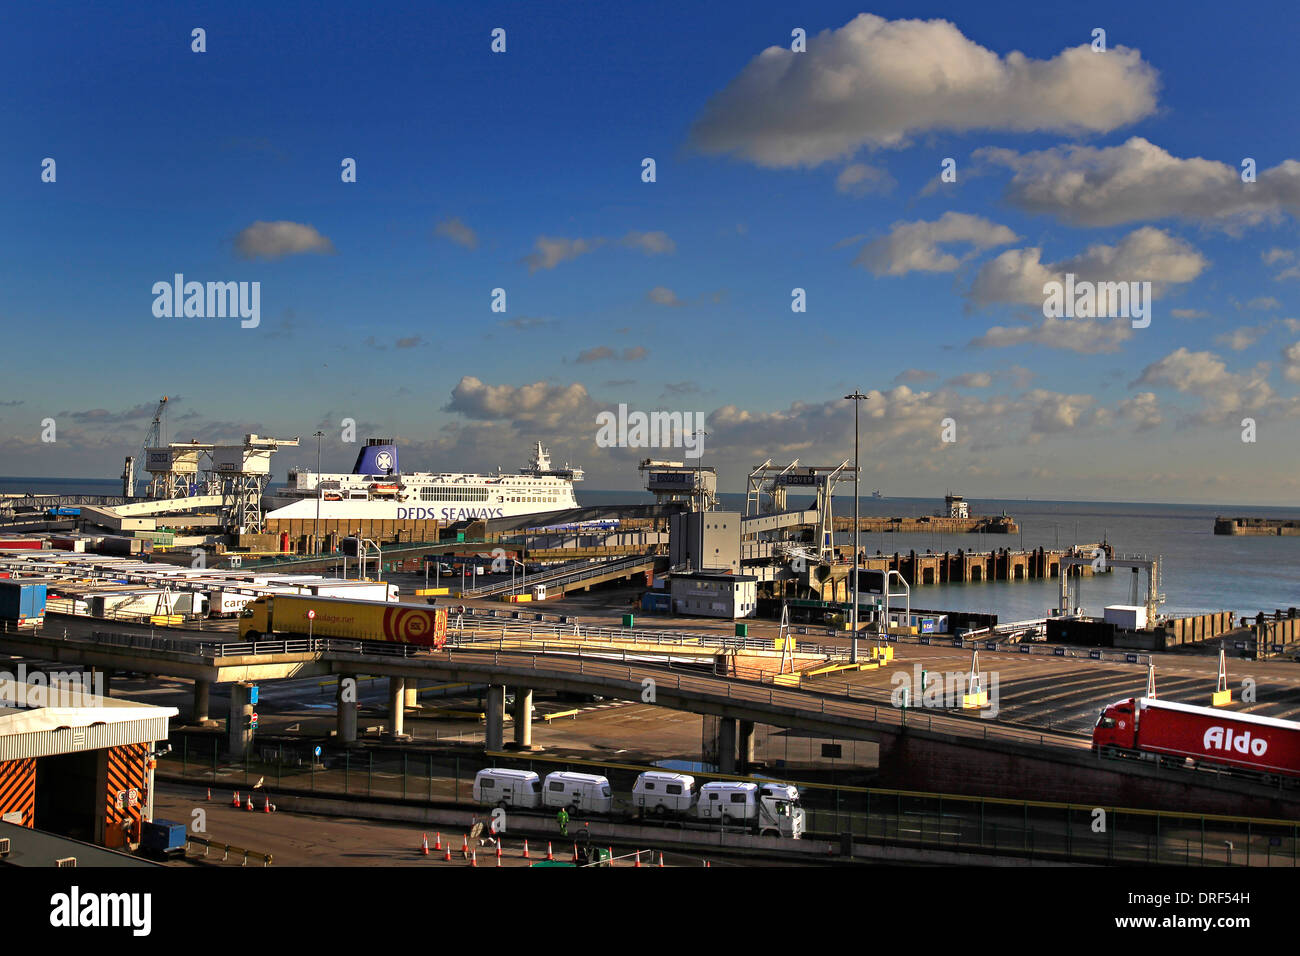 A general view of the Eastern Docks, Port of Dover Ferry Terminal with a ferry in port and lorries disembarking - Stock Image